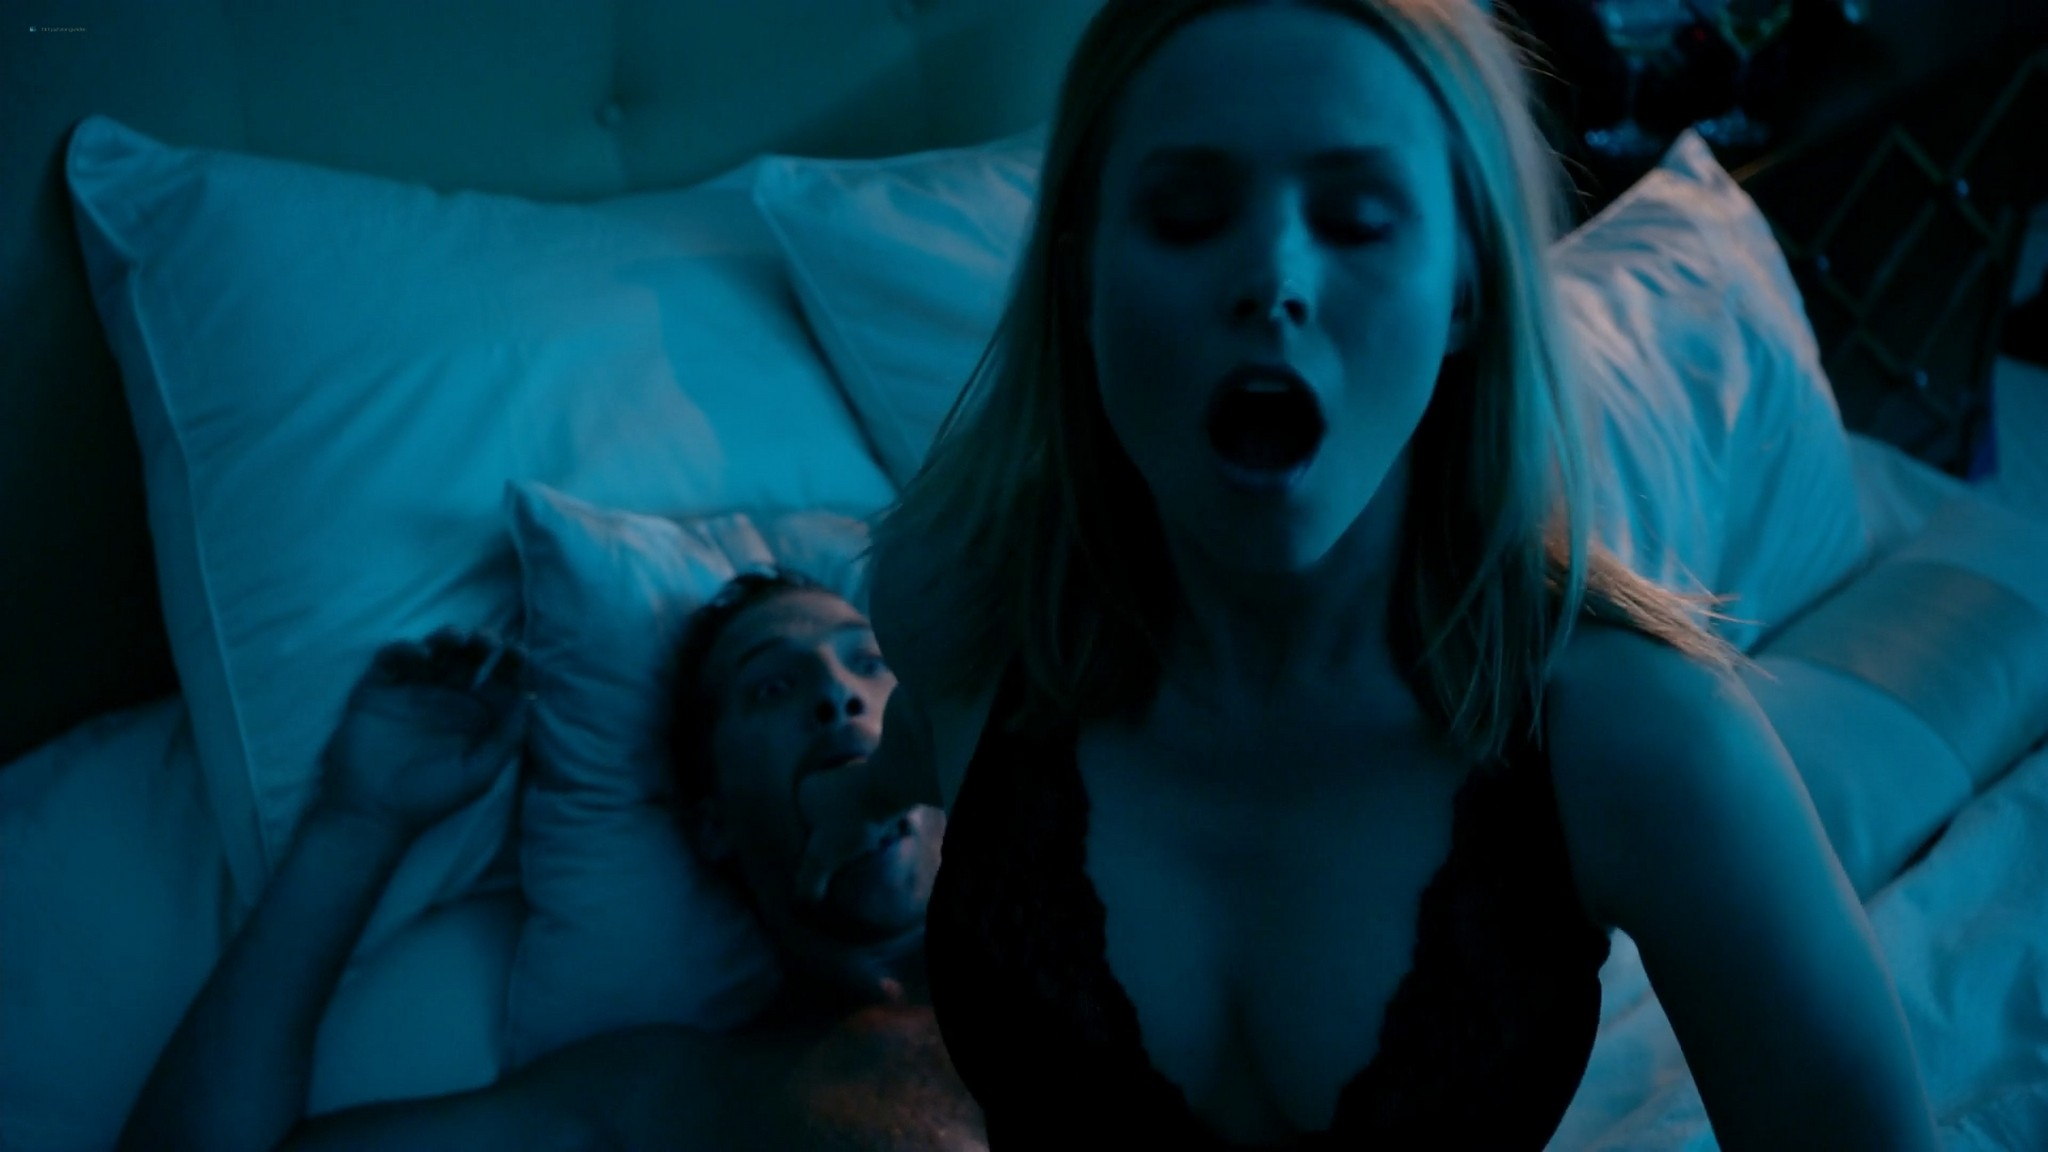 Kristen Bell hot and some sex House of Lies s03 2014 1080p Web 4